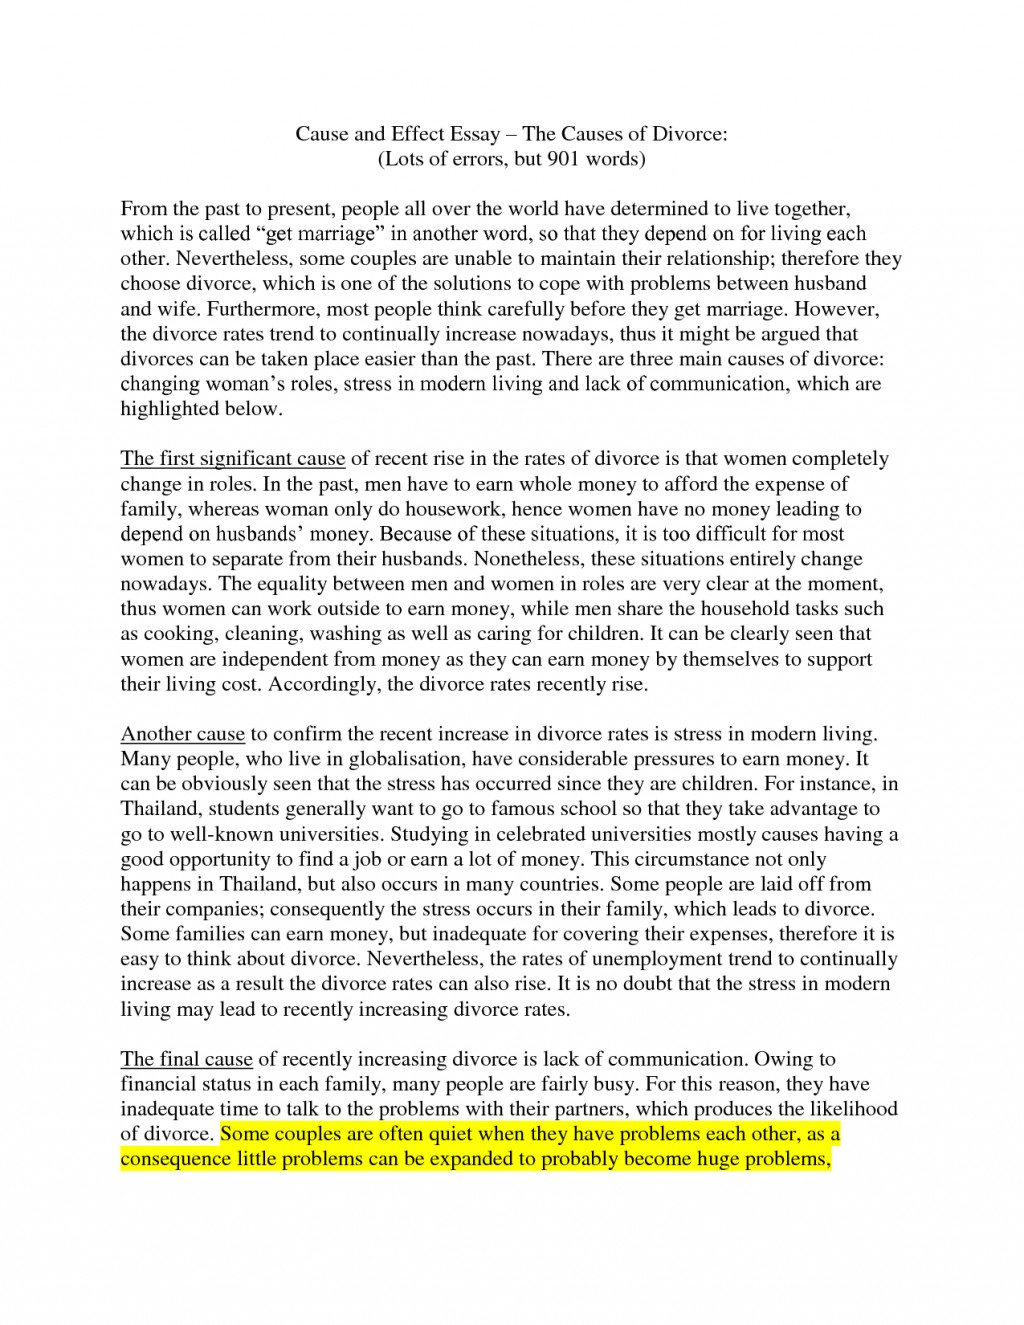 006 Brilliant Ideas Of Cause And Effect Essay Write Ethics Fabulous The Causes Effects Smoking How Wondrous To Introduction Pdf Large